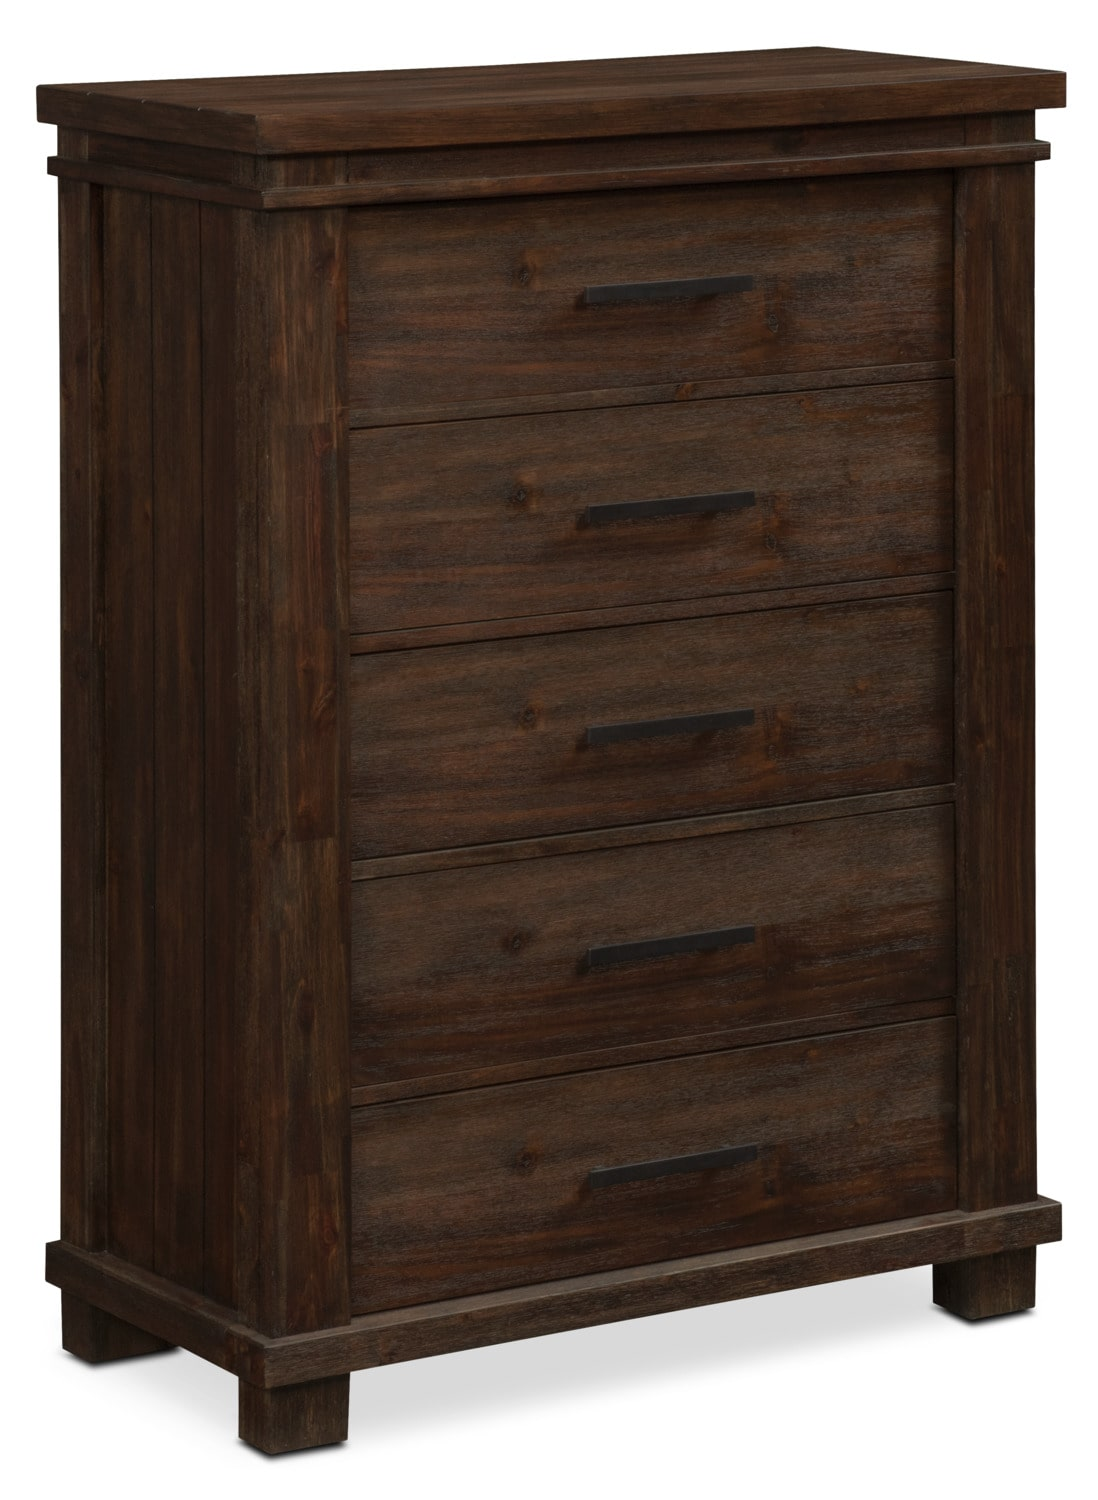 Bedroom Furniture - Tribeca Chest